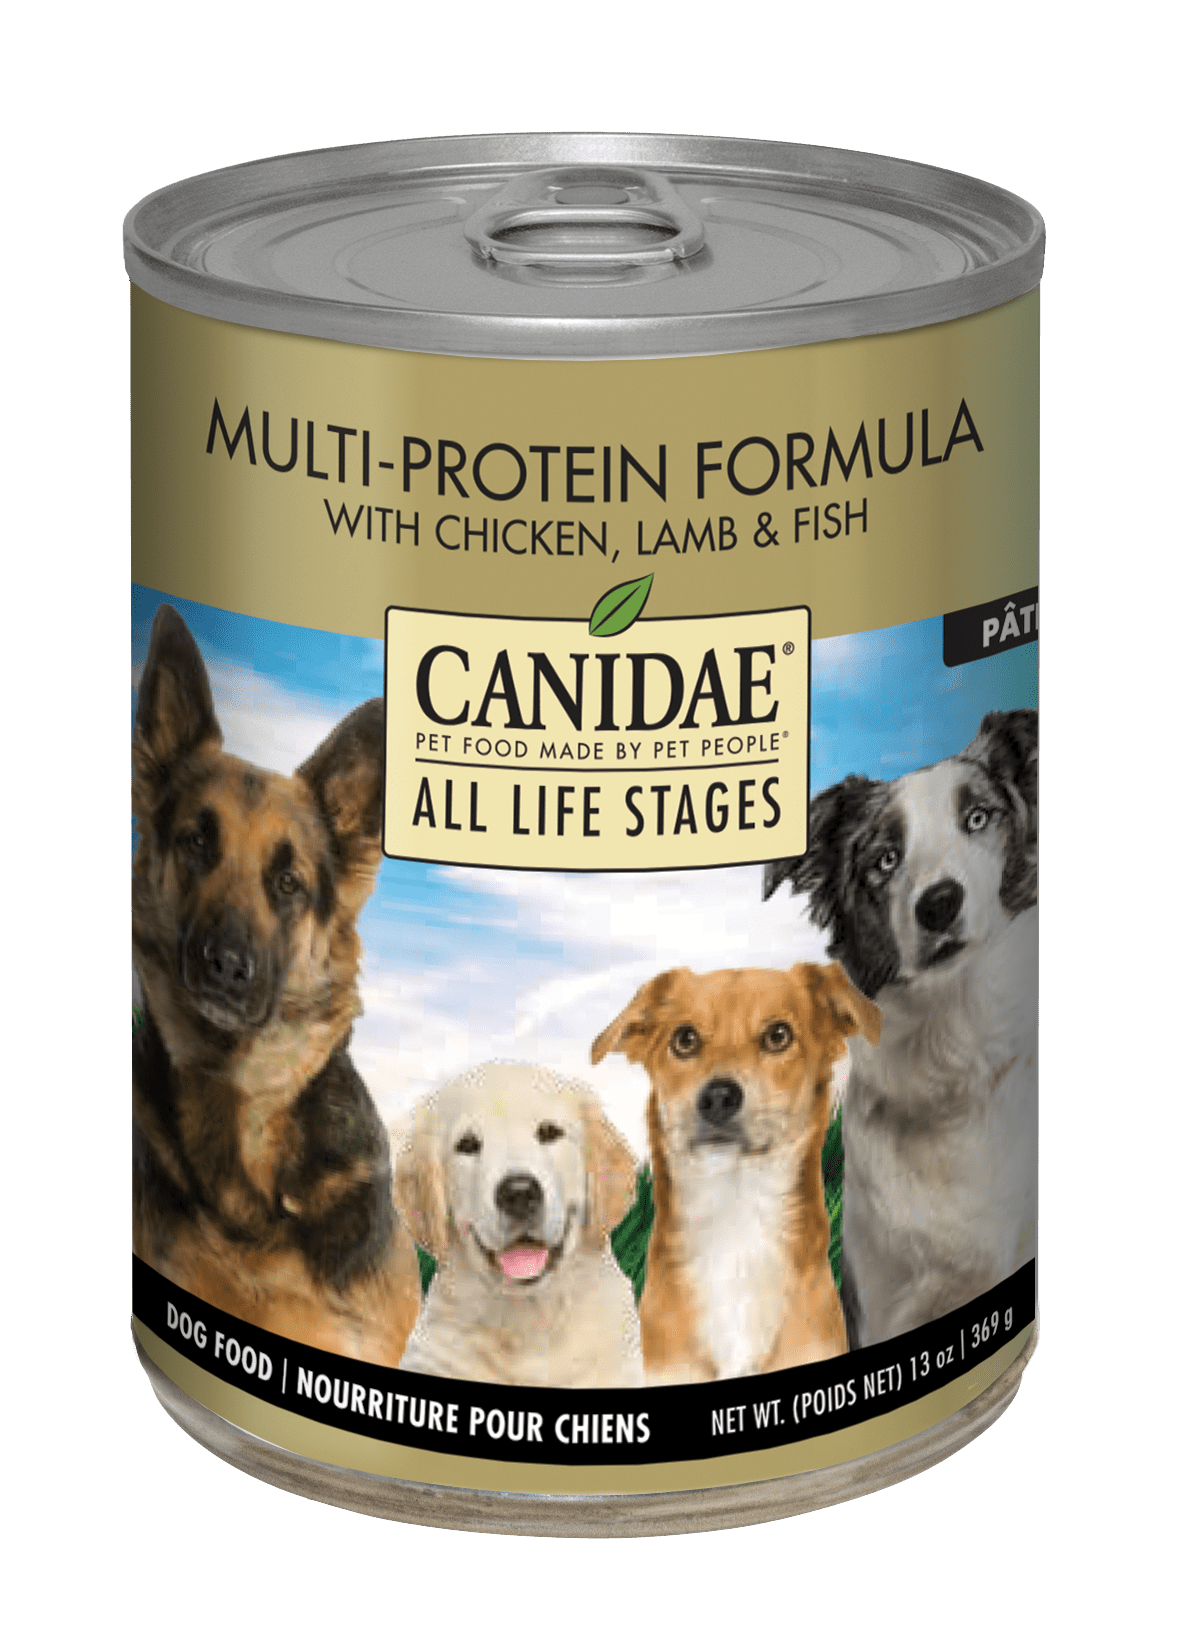 Canidae Life Stages All Life Stages Formula Canned Dog Food Image